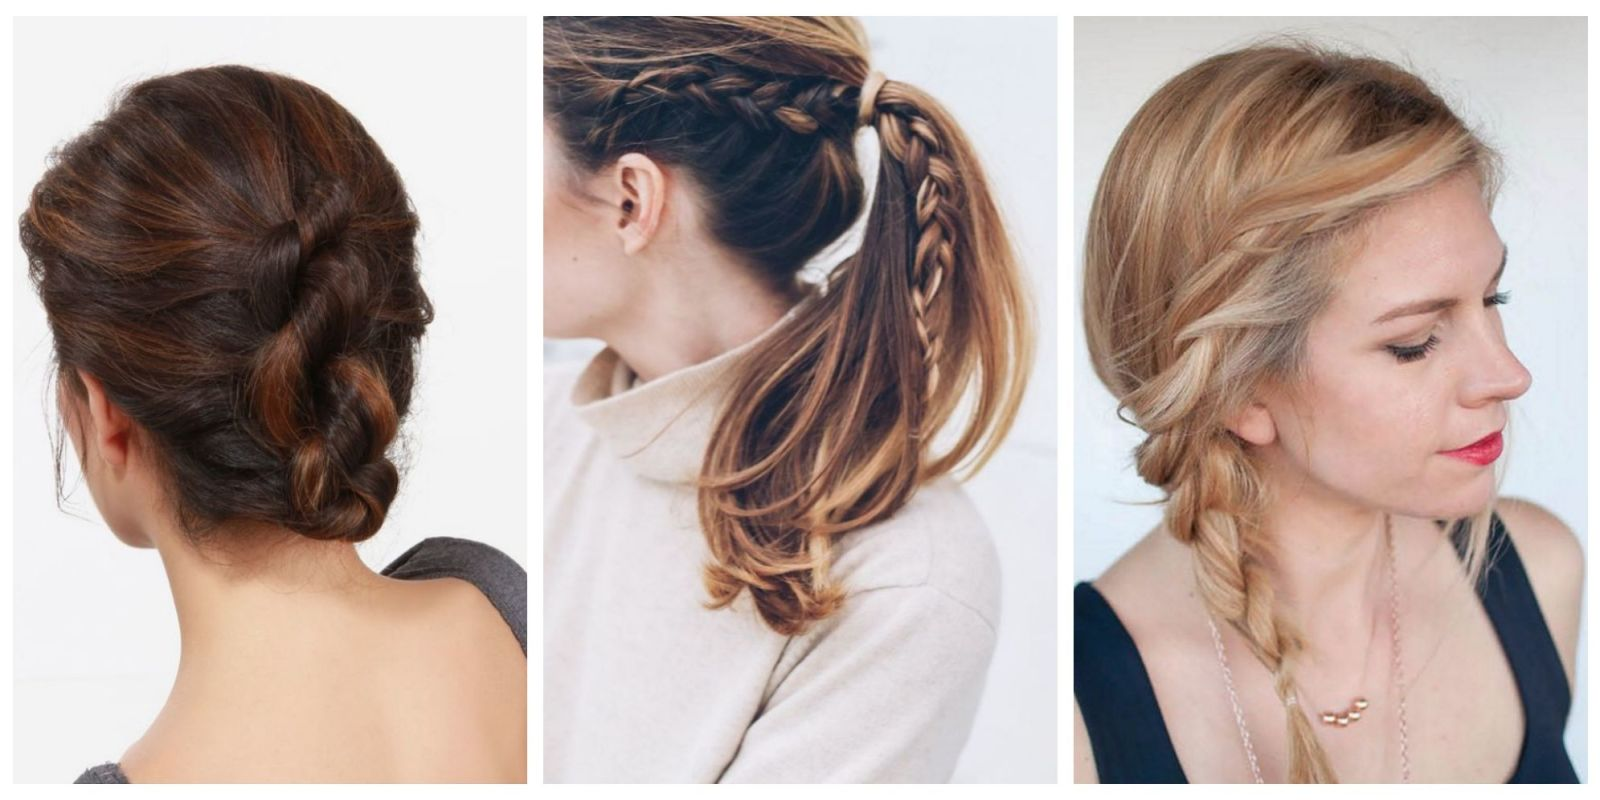 the 10 easiest summer hair ideas on pinterest - easy summer hairstyles